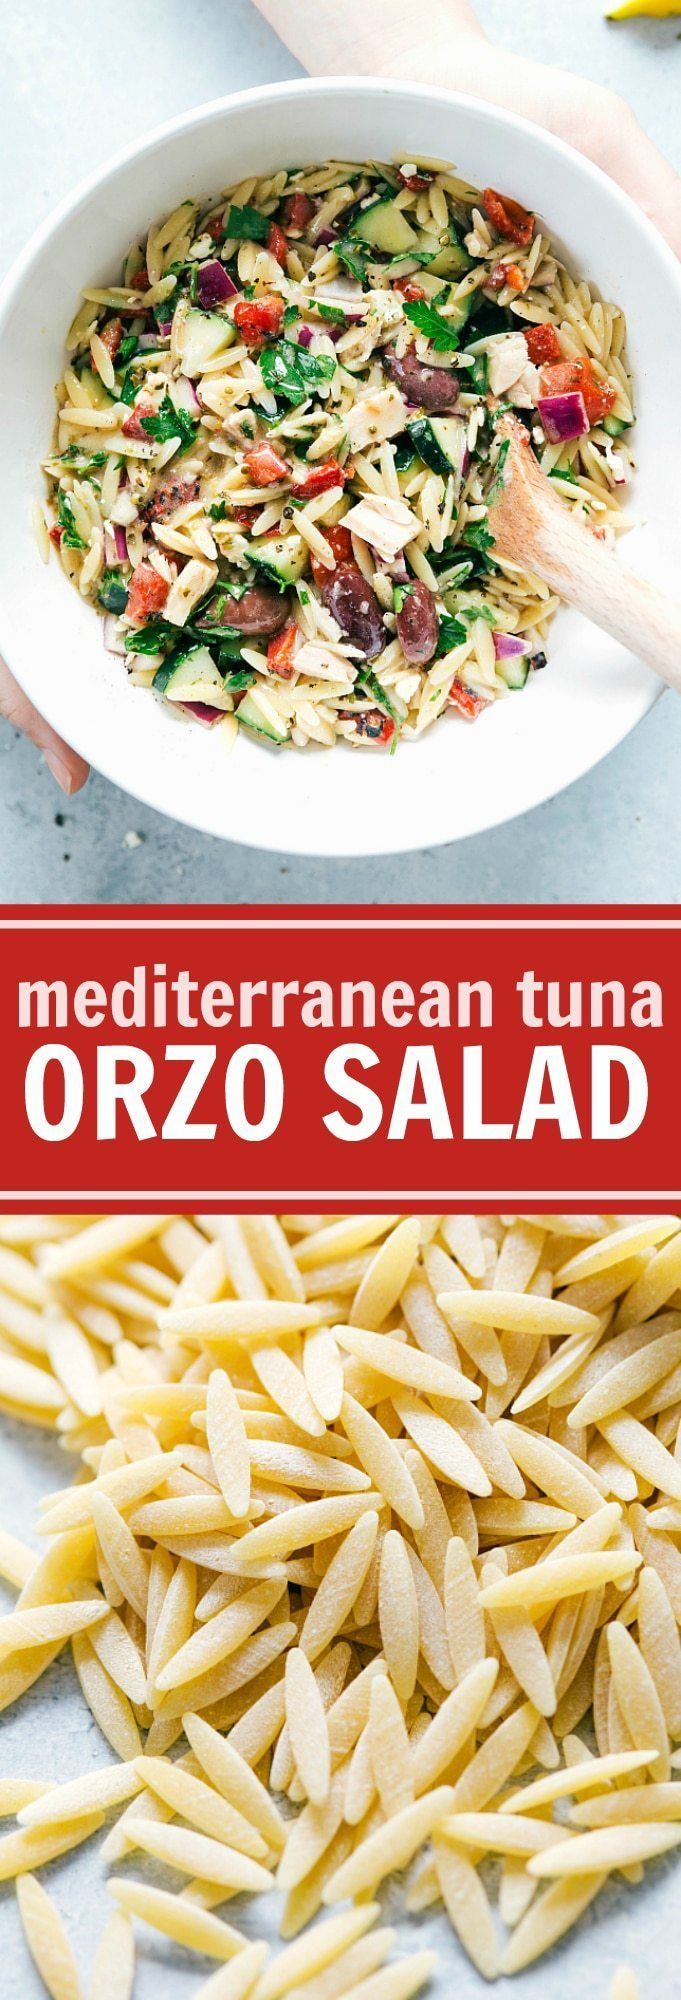 A deliciously light and healthy Mediterranean-inspired orzo salad with tuna, veggies, and a lemon-oregano vinaigrette. via chelseasmessyapron.com